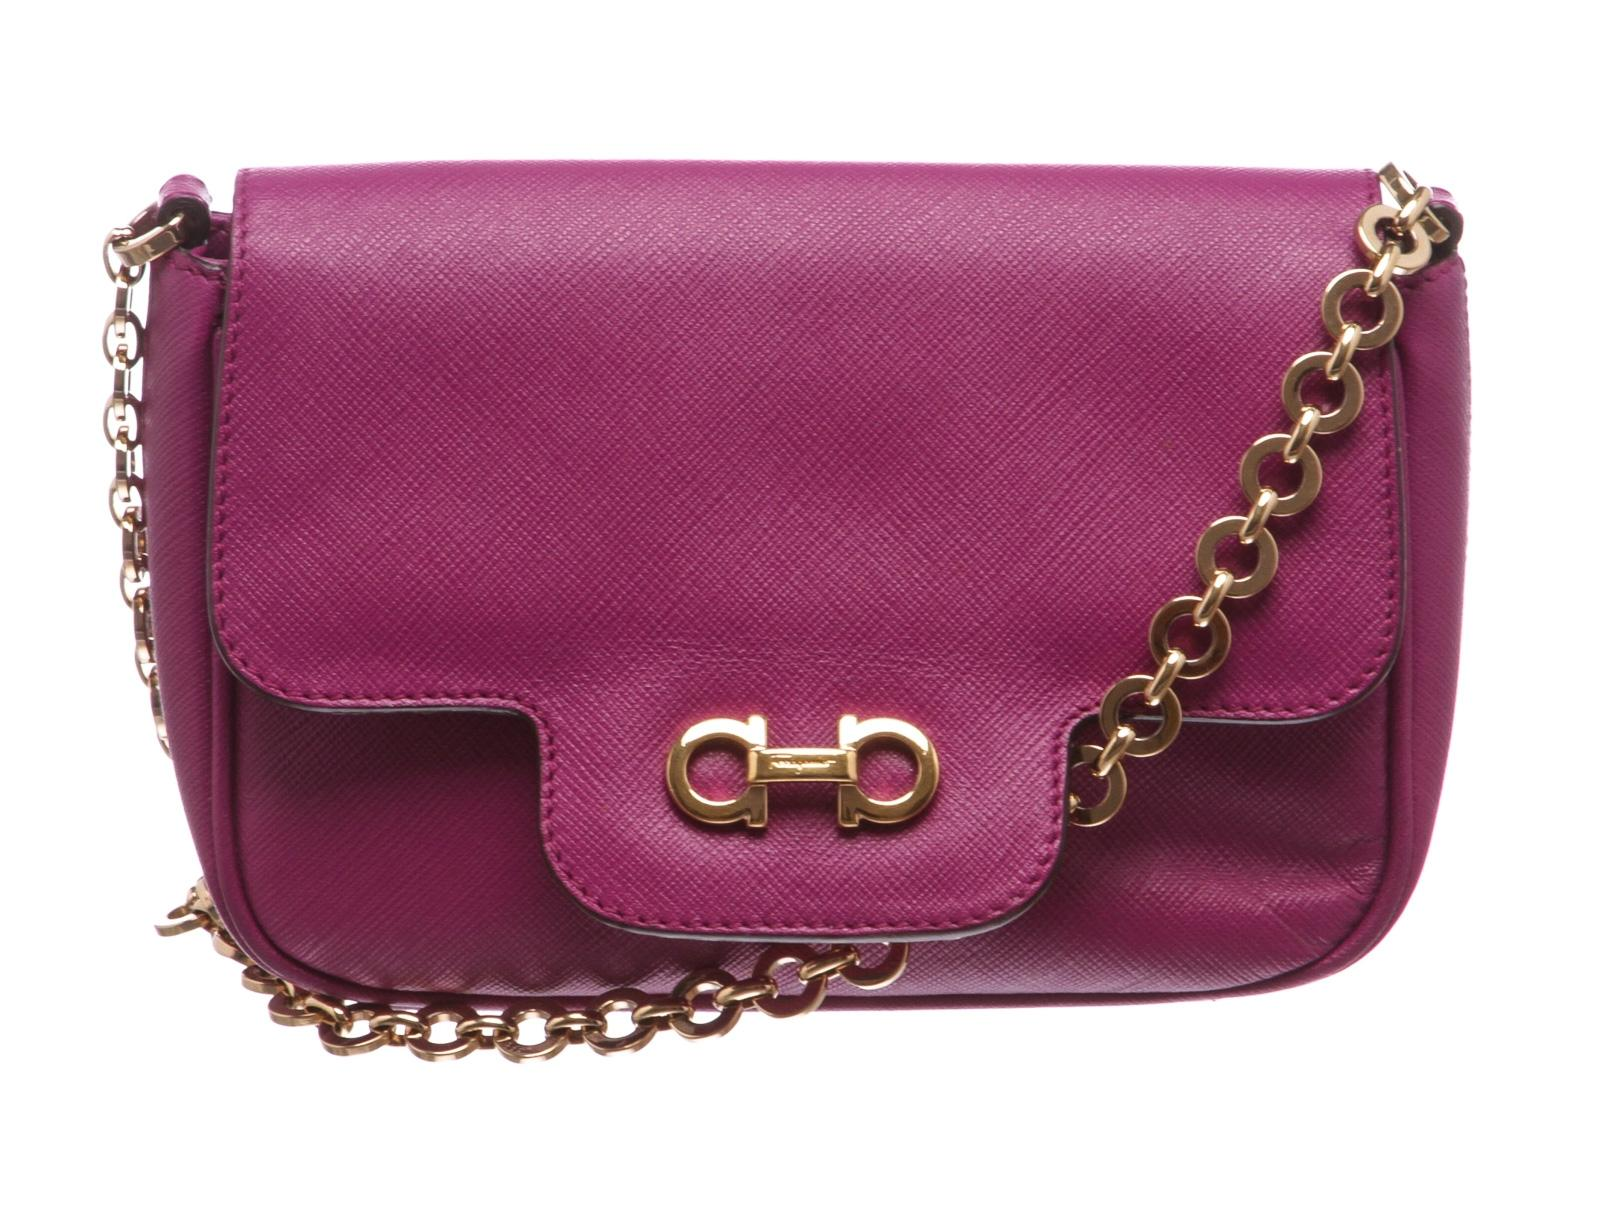 Gancini shoulder bag - Pink & Purple Salvatore Ferragamo p7hoQ56AvM